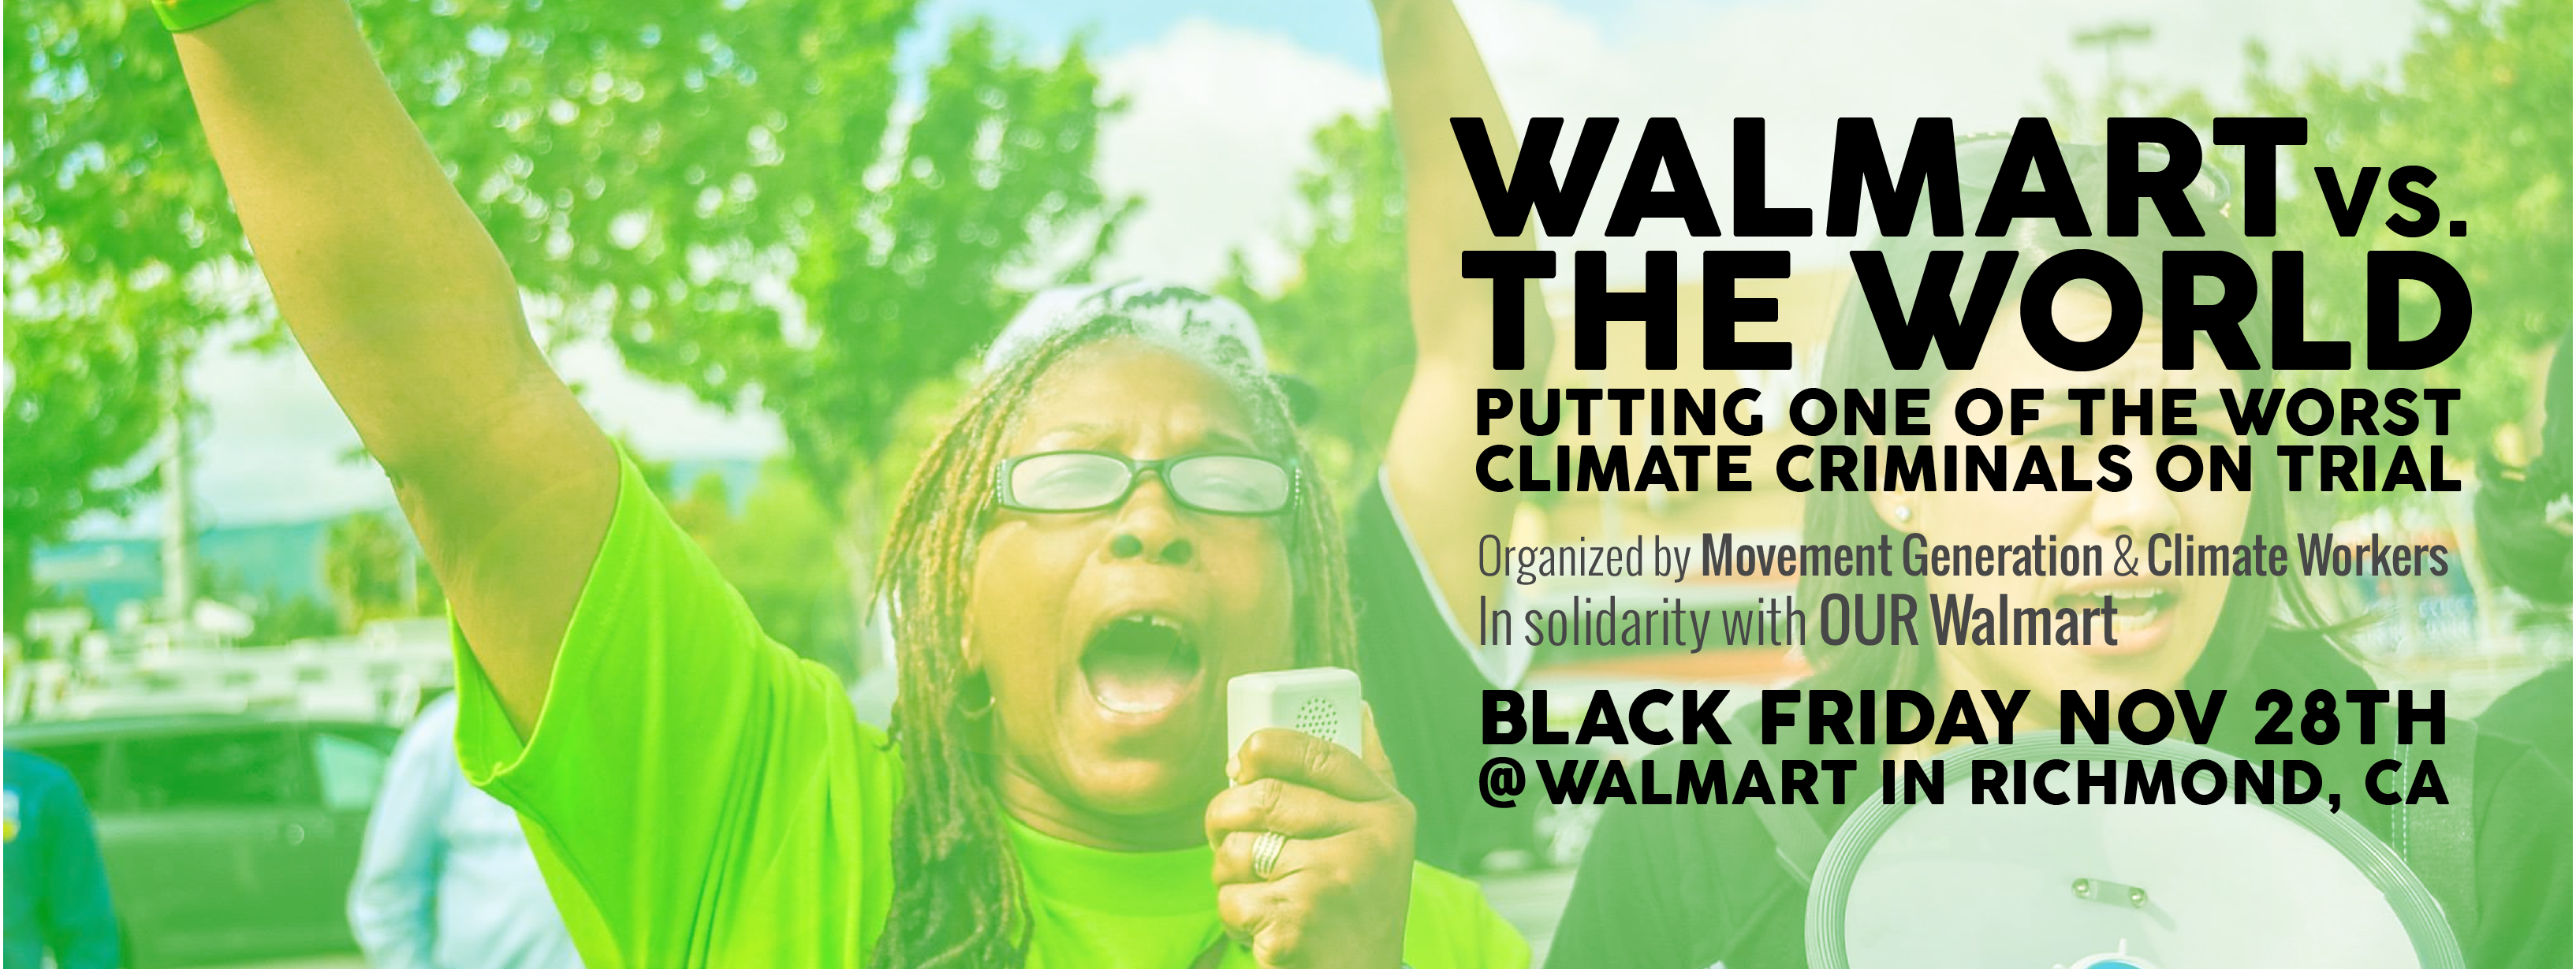 Movement Generation Black Friday Walmart In Richmond Ca Put Walmart On Trial As A Climate Criminal